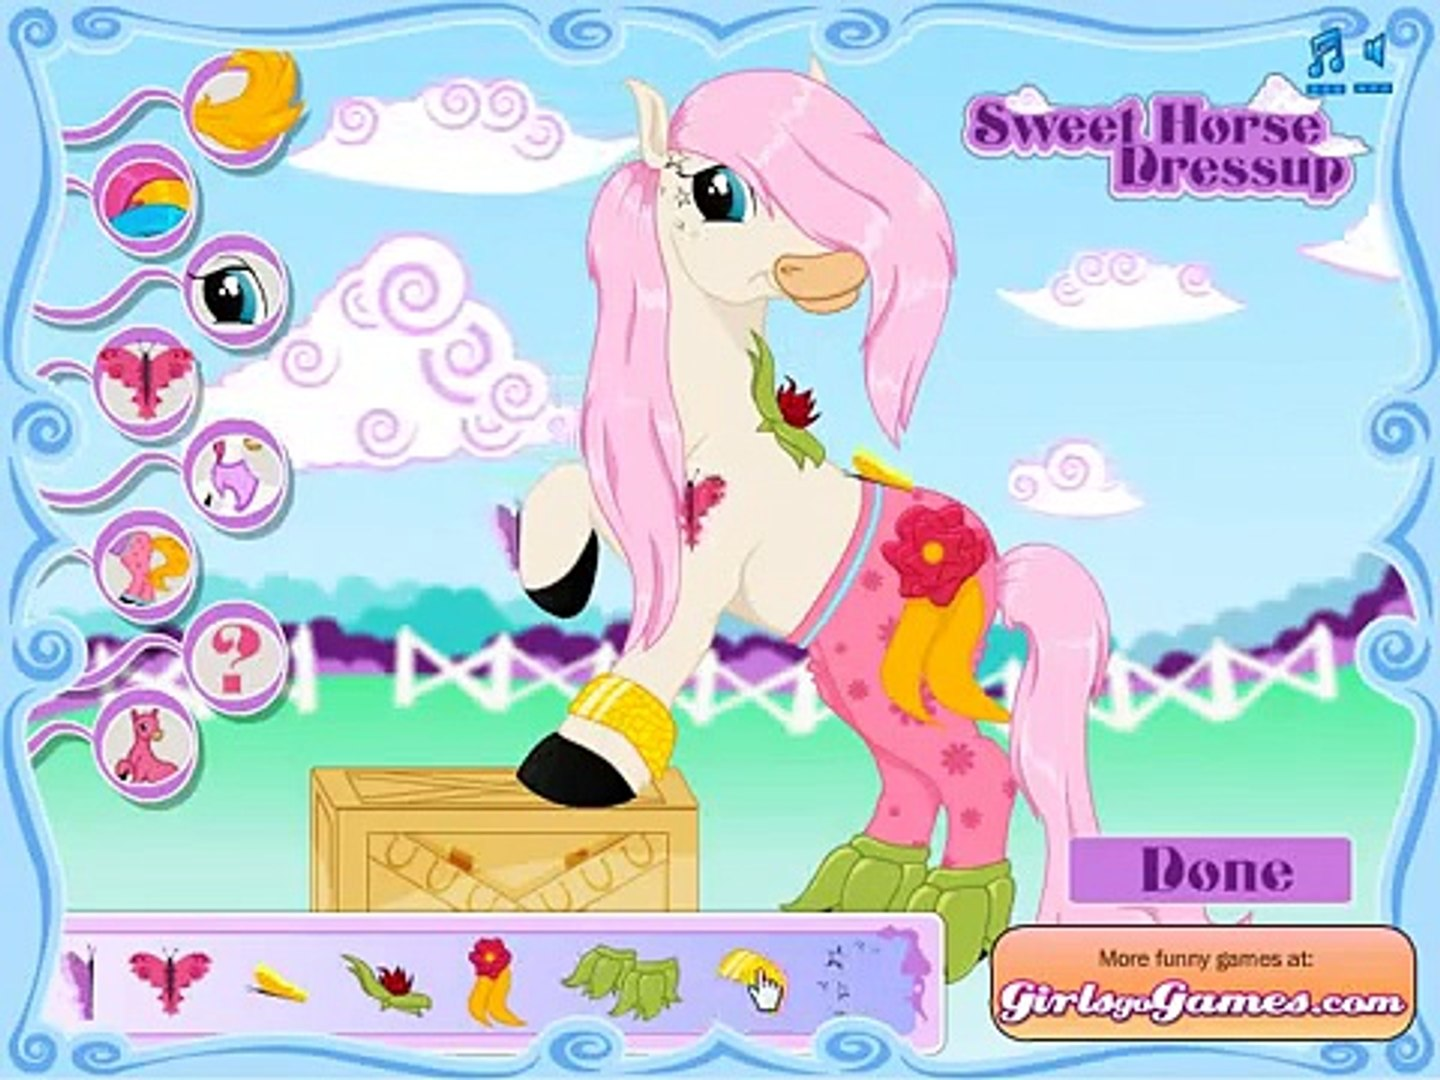 sweet dorse dressing game , best game play for kids , nice game for childrens , super game for kids